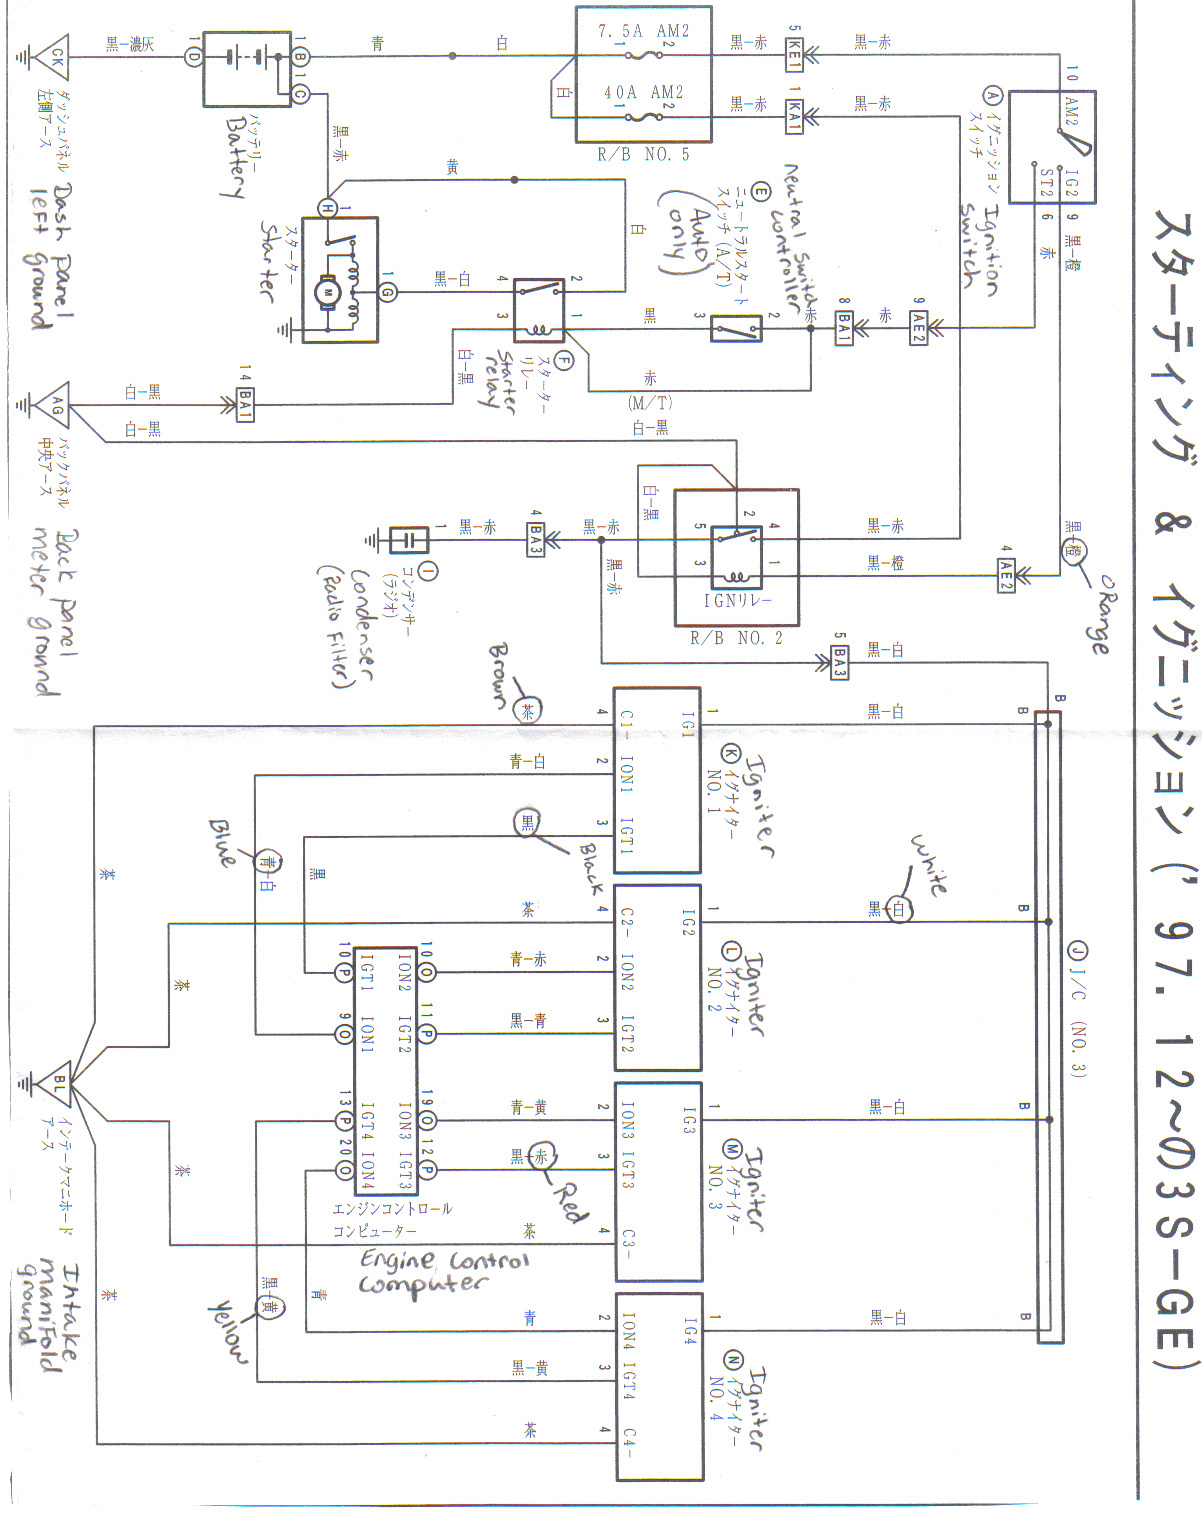 toyota mr2 radio wiring diagram ford f350 for trailer plug metra 70 1771 harness